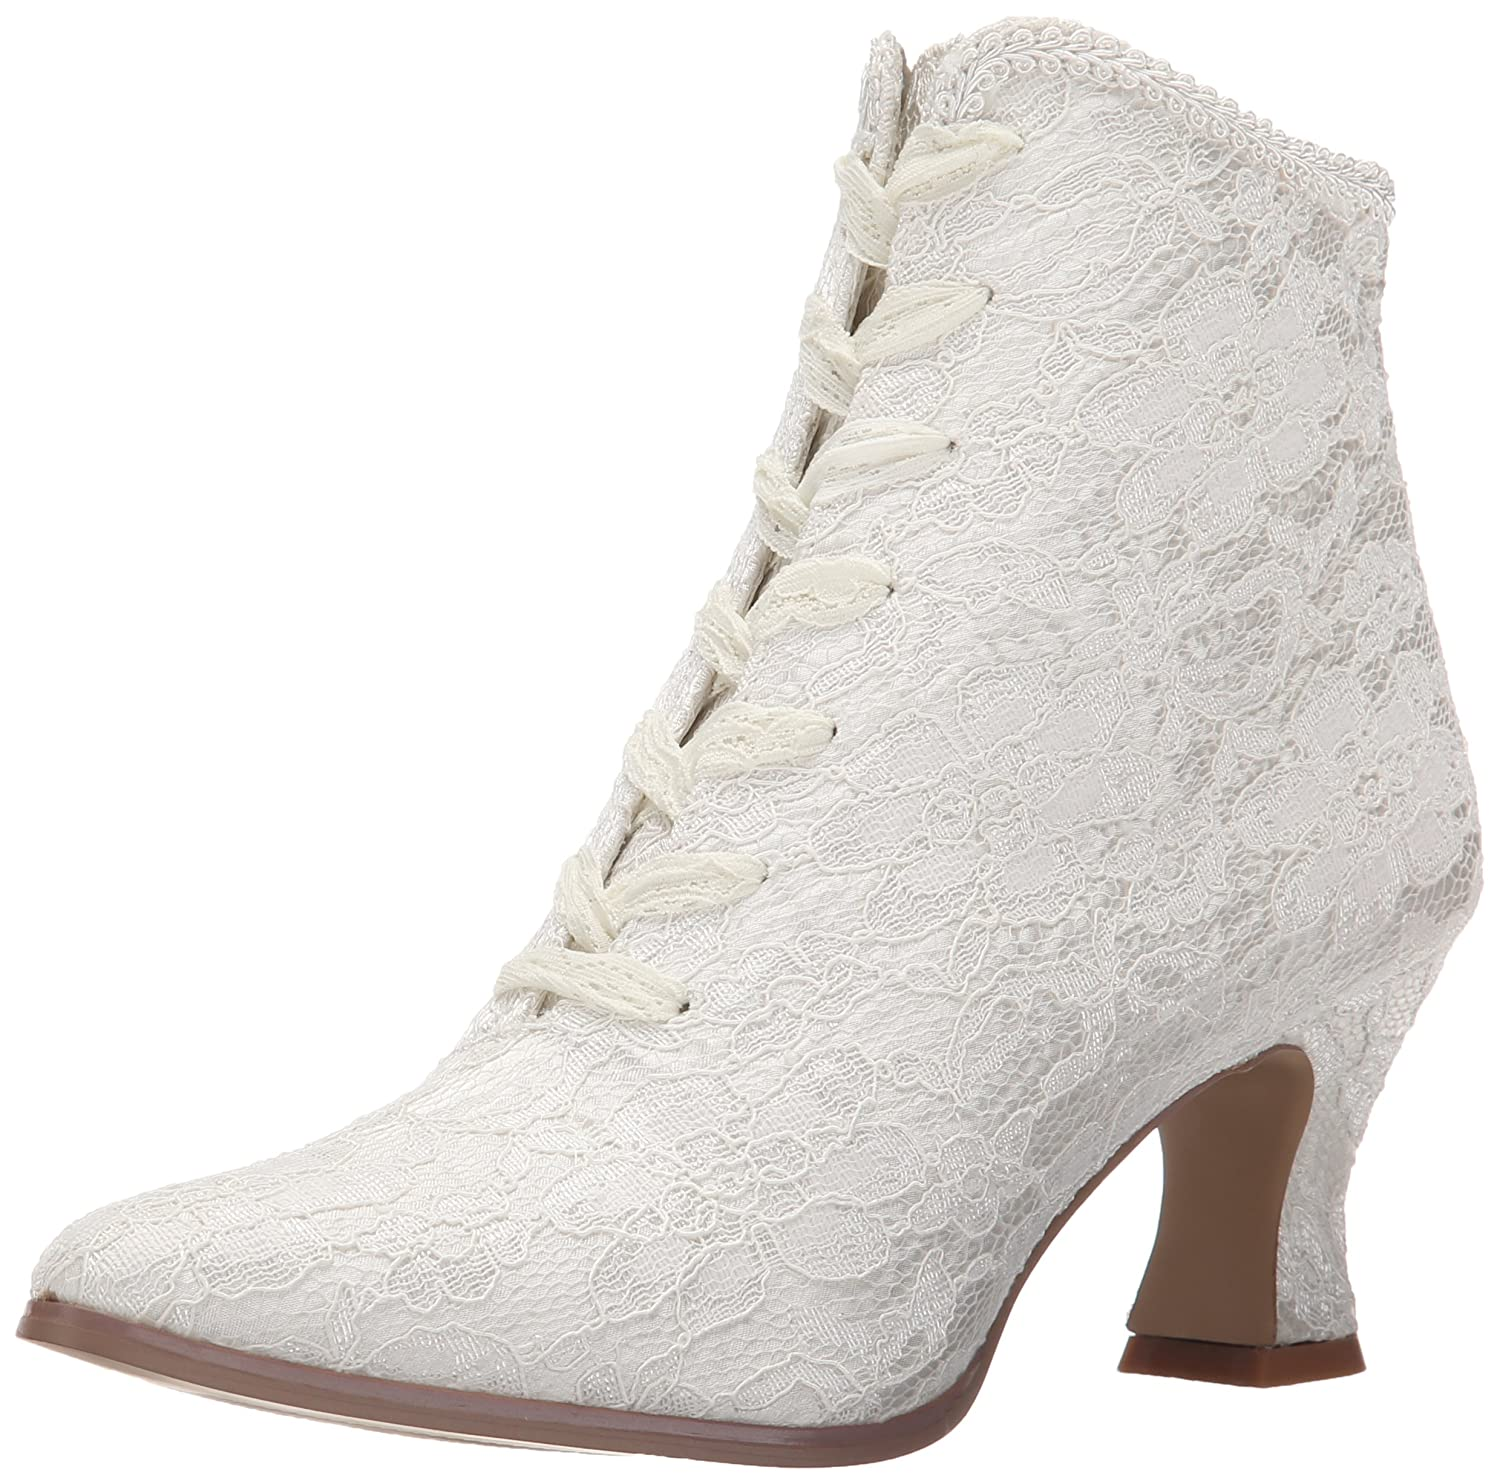 Fabulicious Women's VIC30/IVSA Boot B00JEY3UDW 9 B(M) US Ivory Satin/Lace